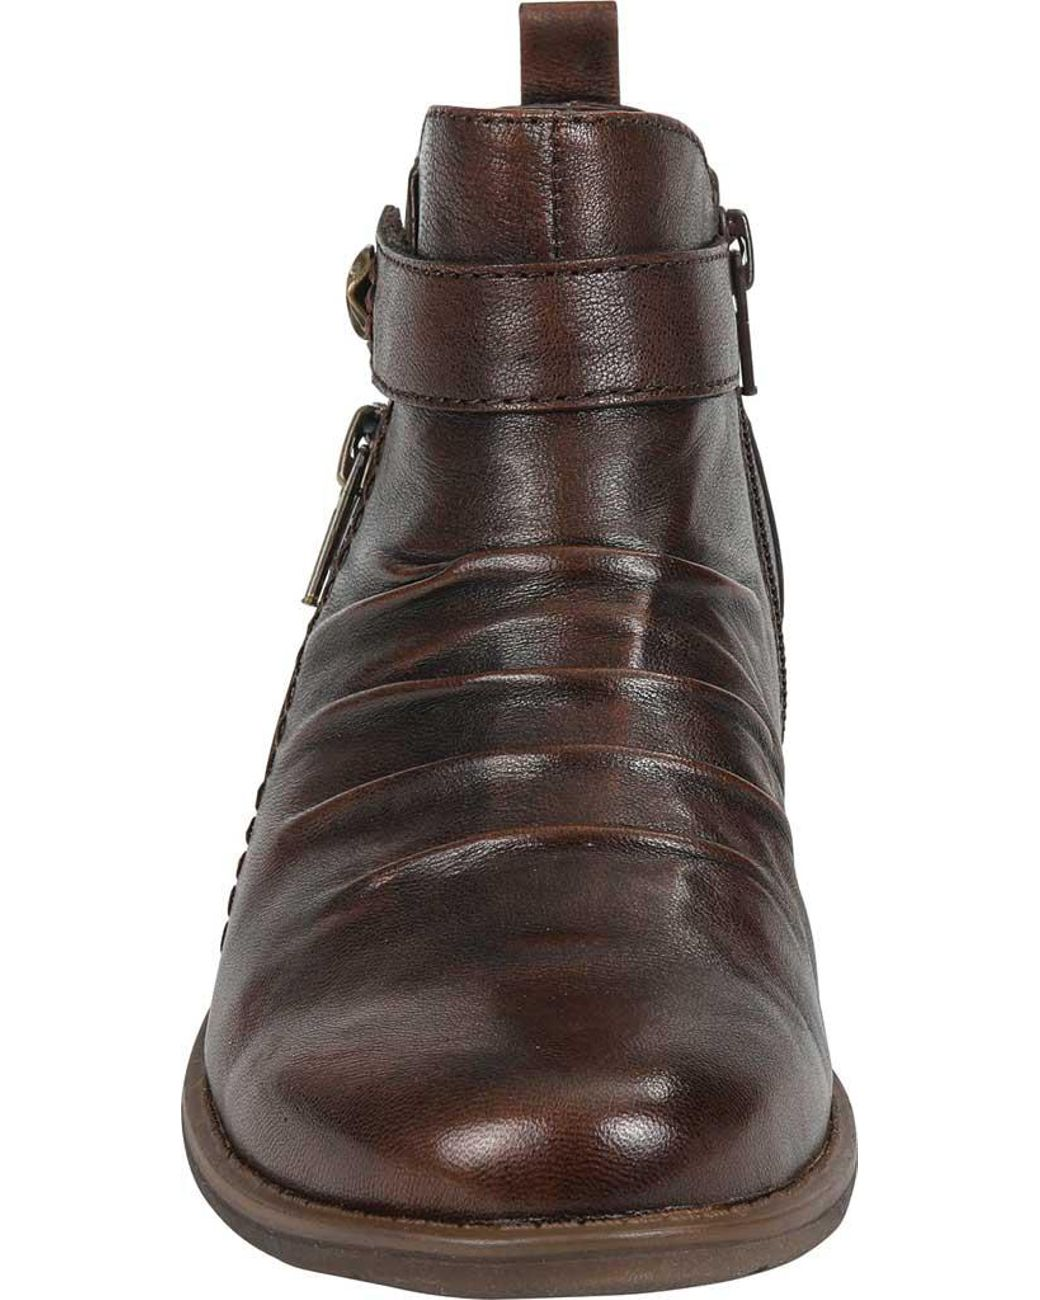 ca6c37ee286 Lyst - Earth Brook Slouch Boot in Brown - Save 40%